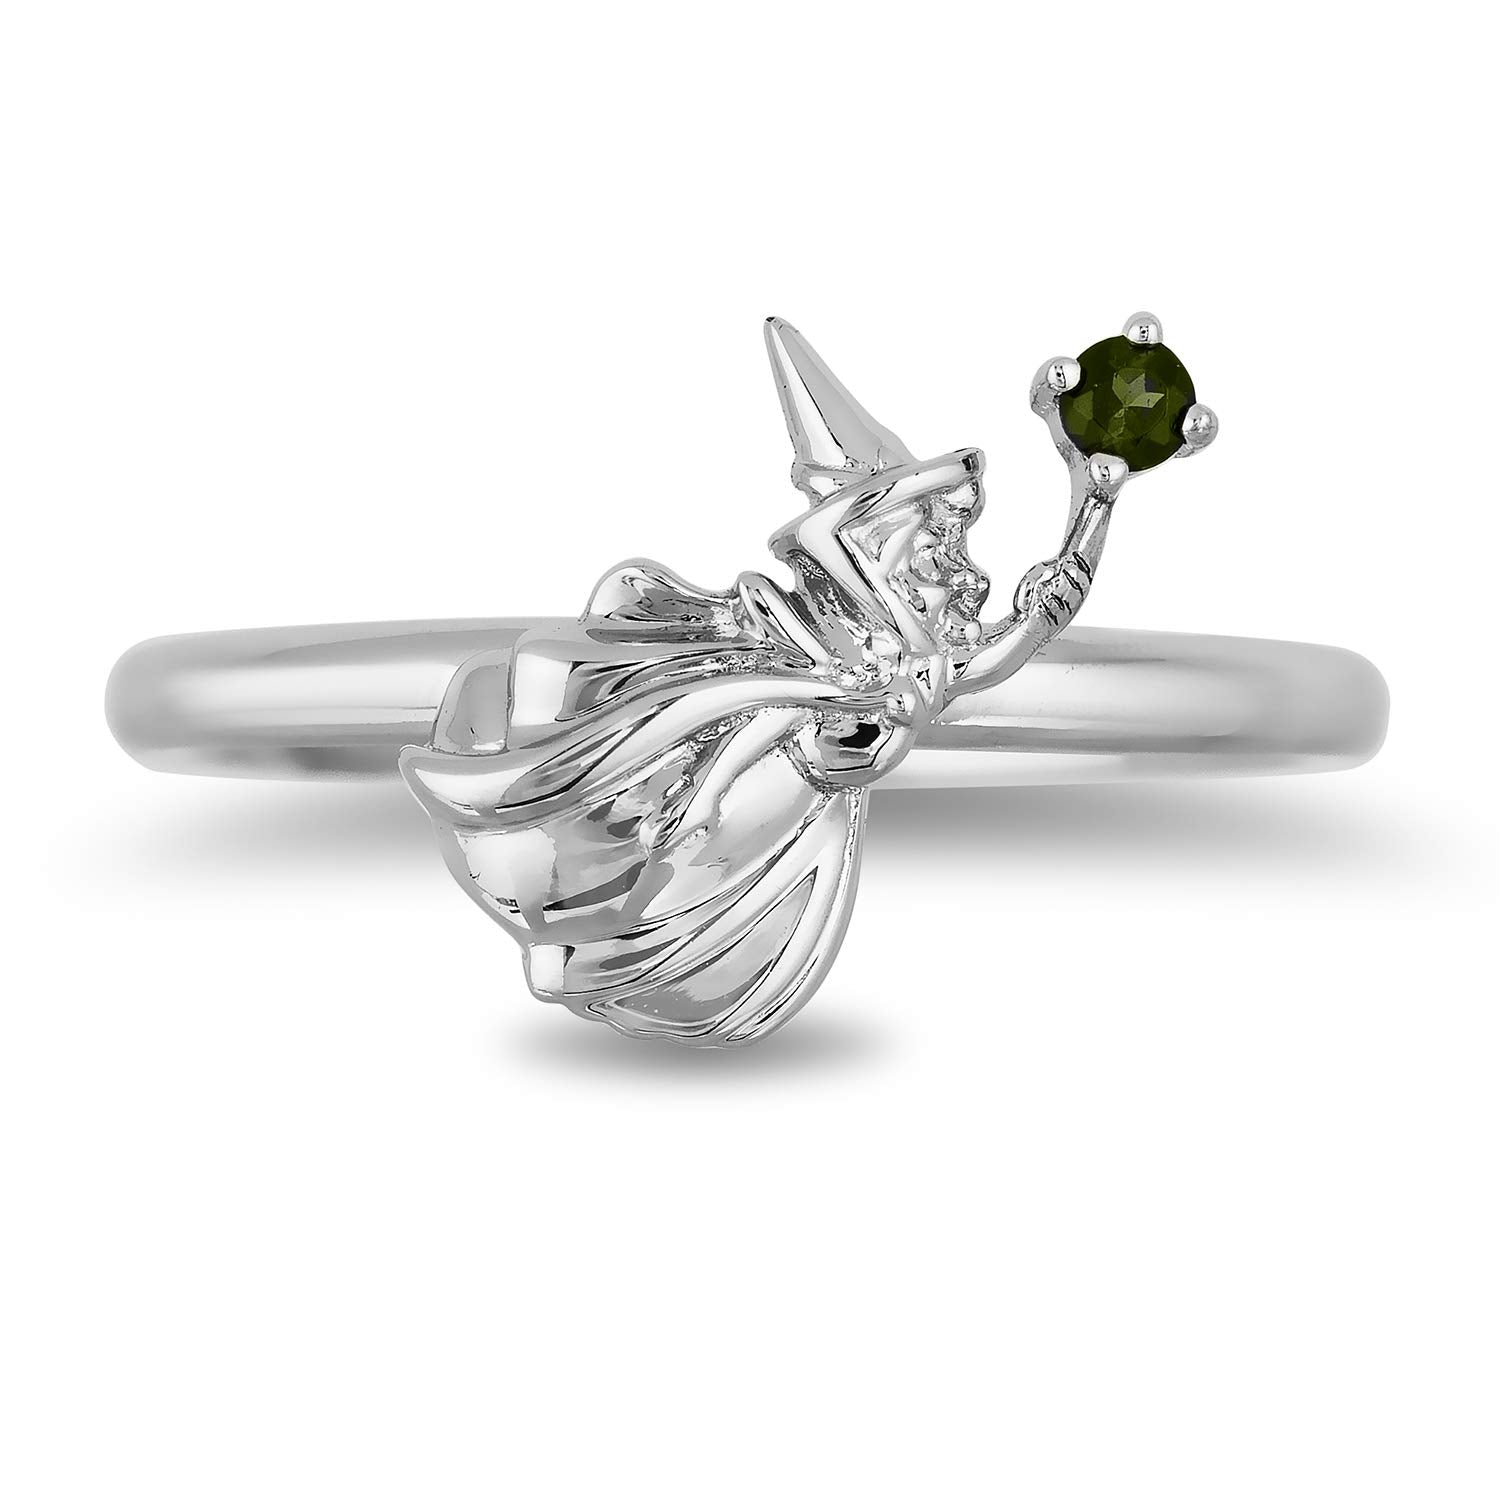 enchanted_disney-aurora_fauna_fairy_ring-sterling_silver_2